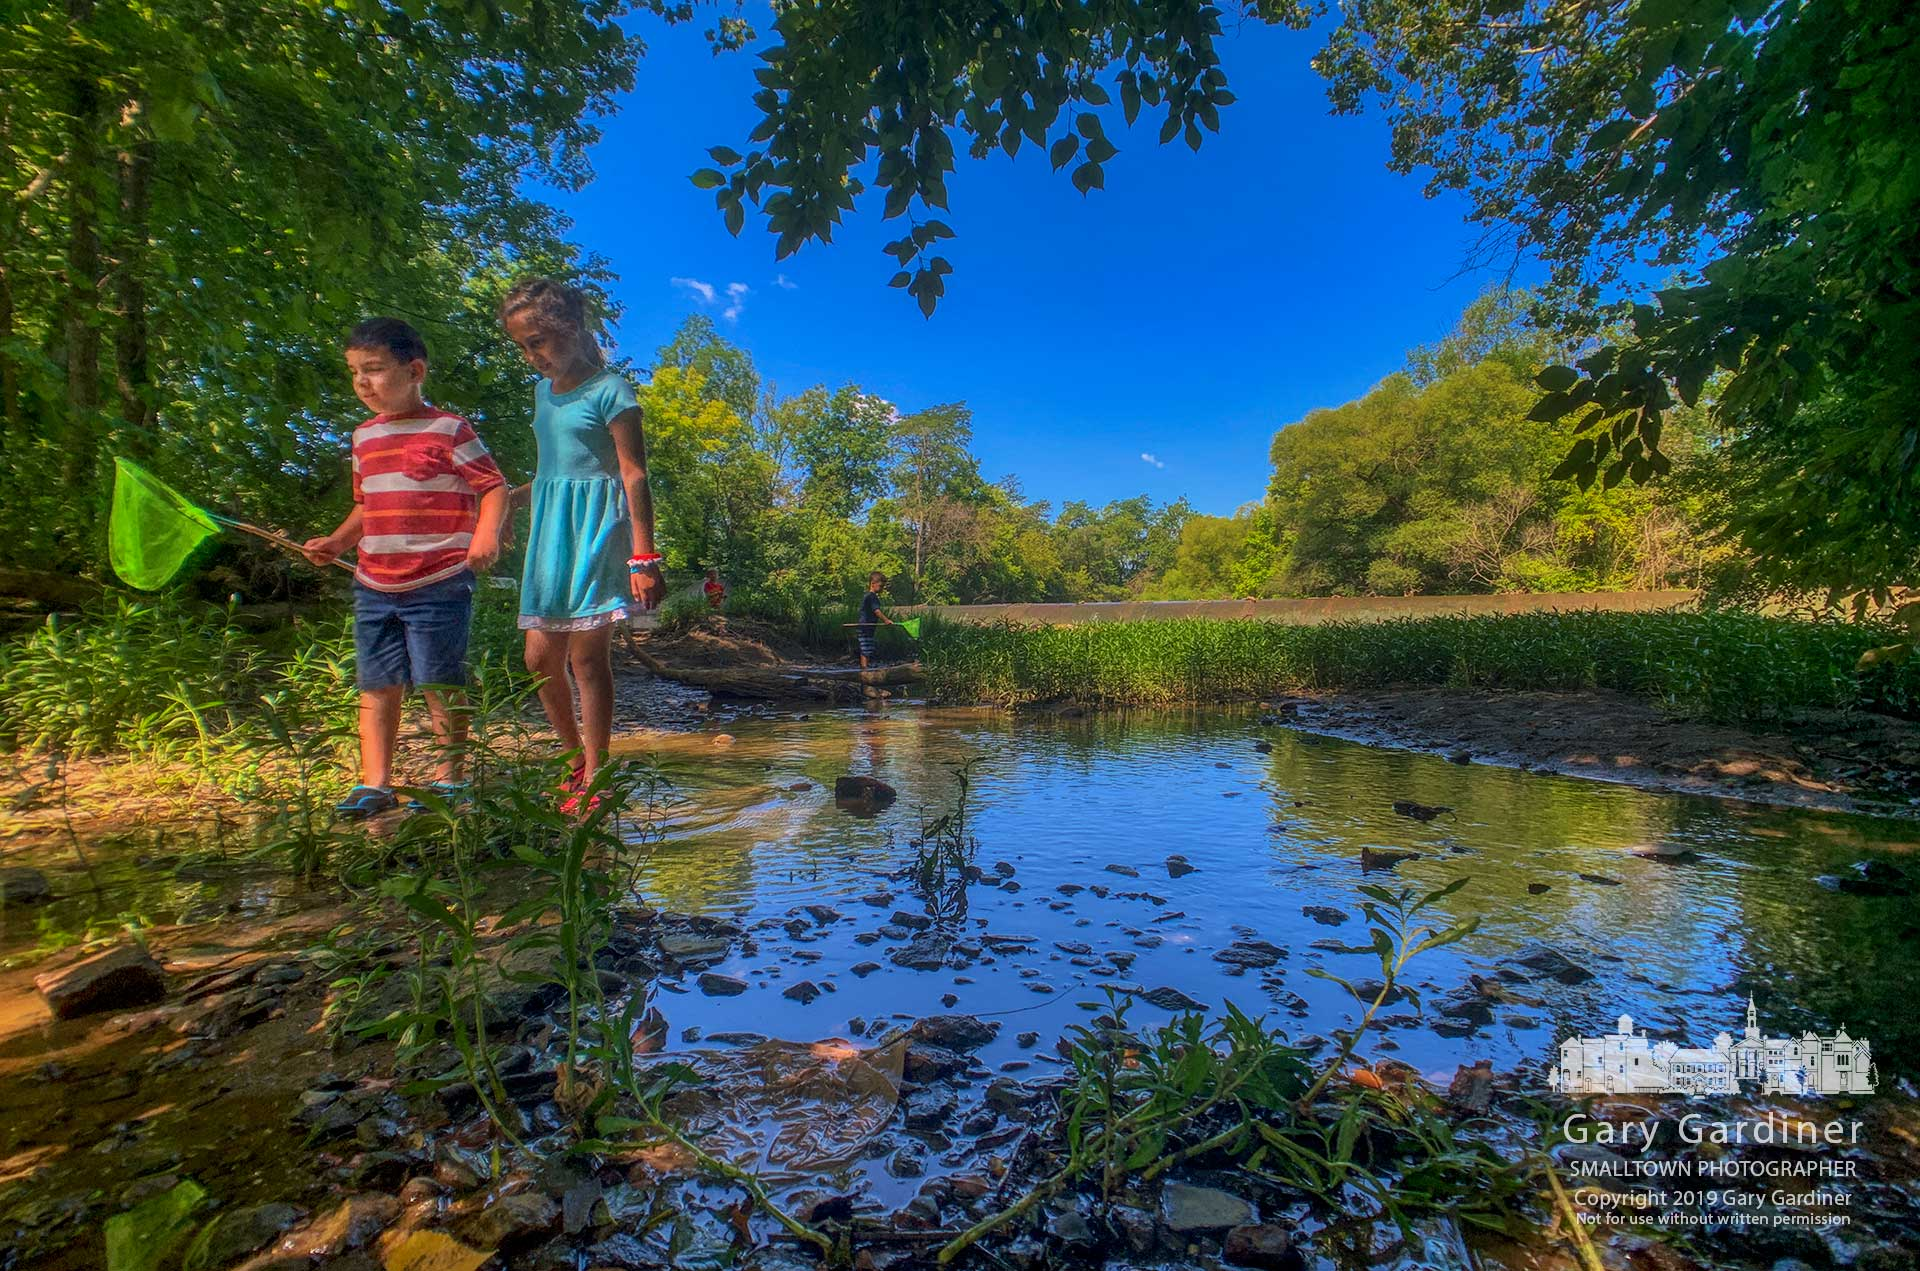 A brother and sister head downstream searching for minnows to add to their father's catch from fishing below the lowhead dam in Alum Creek Park North in Westerville. My Final Photo for July 25, 2019